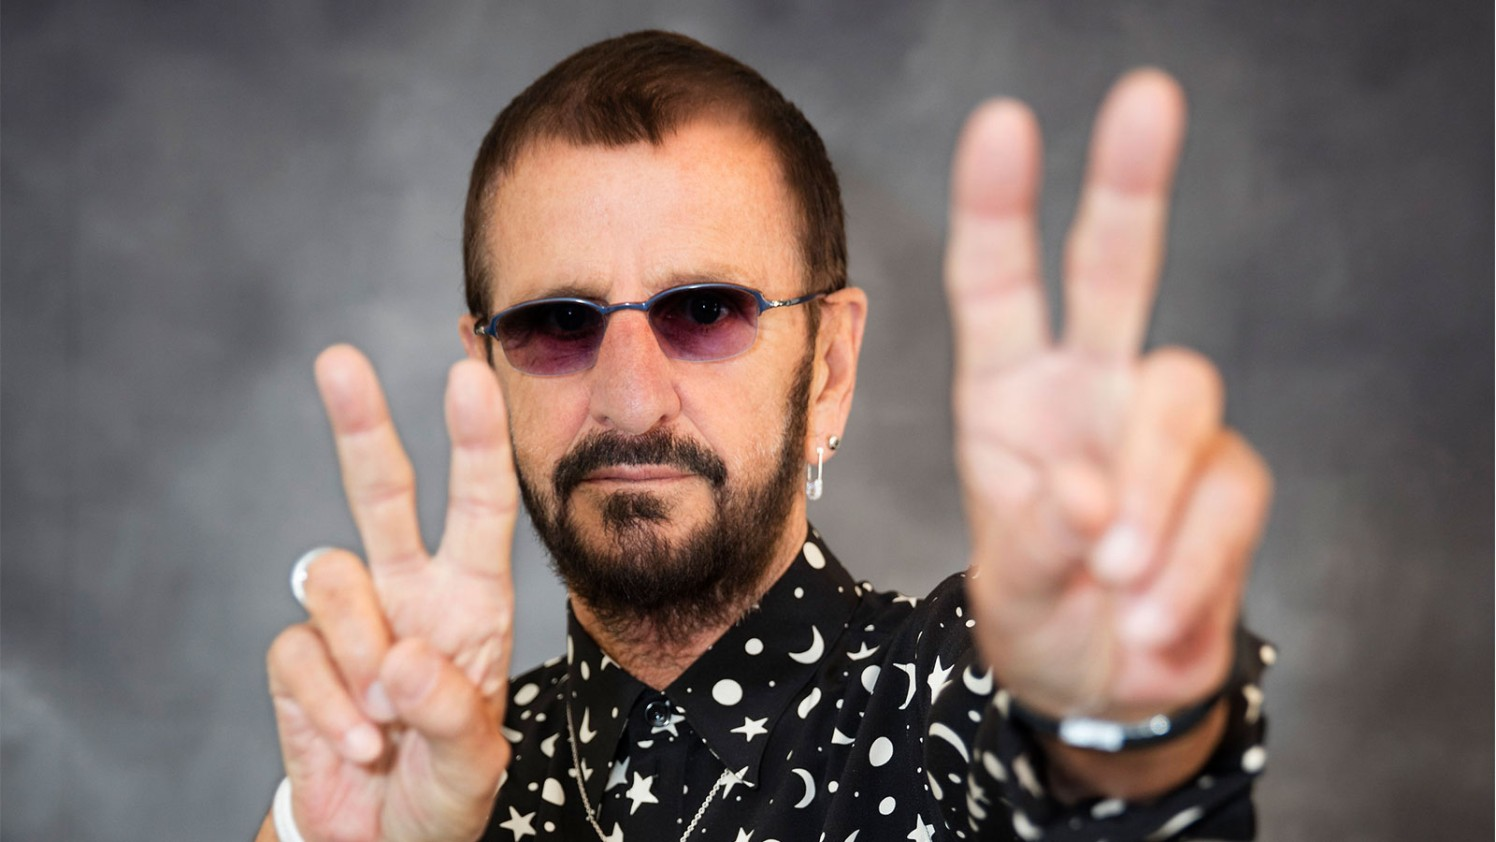 Sir Ringo Starr C Scott Robert Ritchie